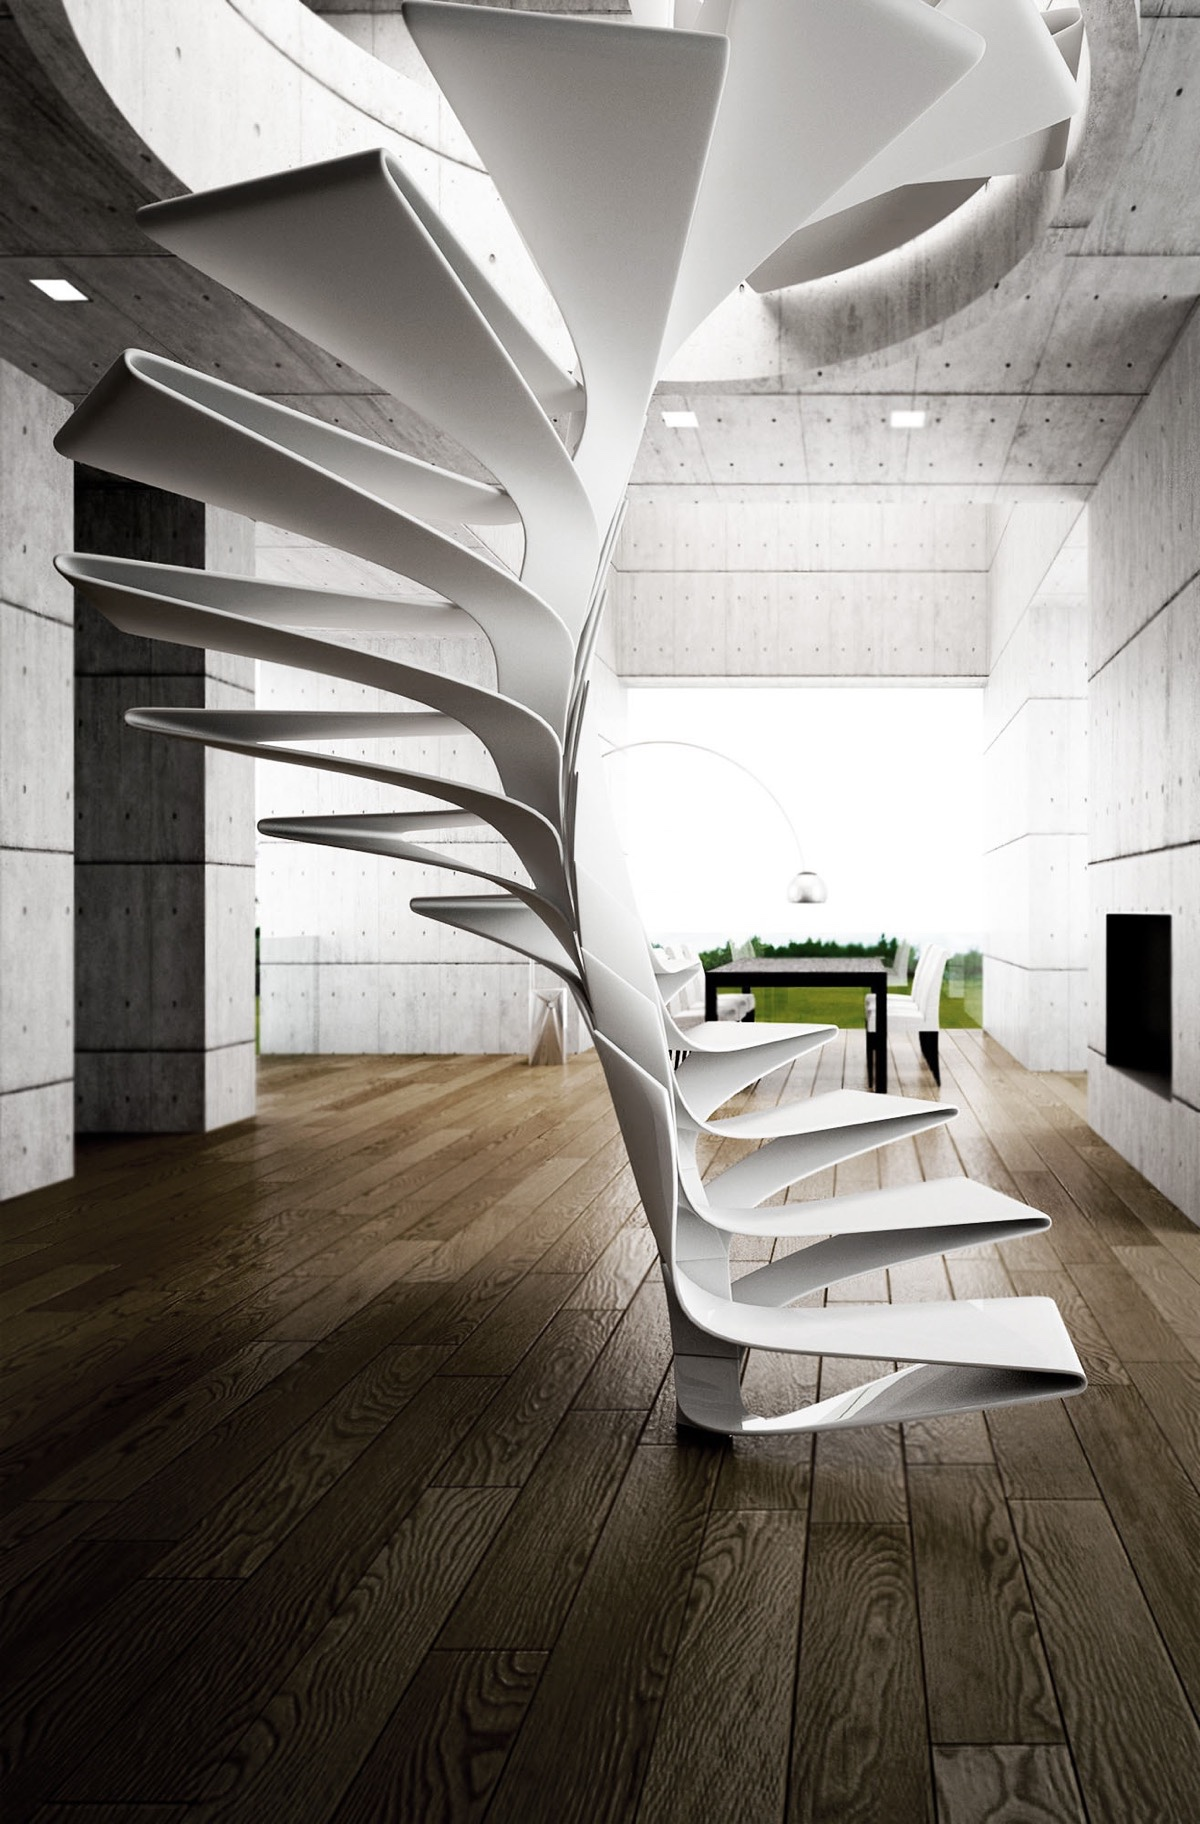 Interior Staircase Designs 25 Unique Staircase Designs To Take Center Stage In Your Home